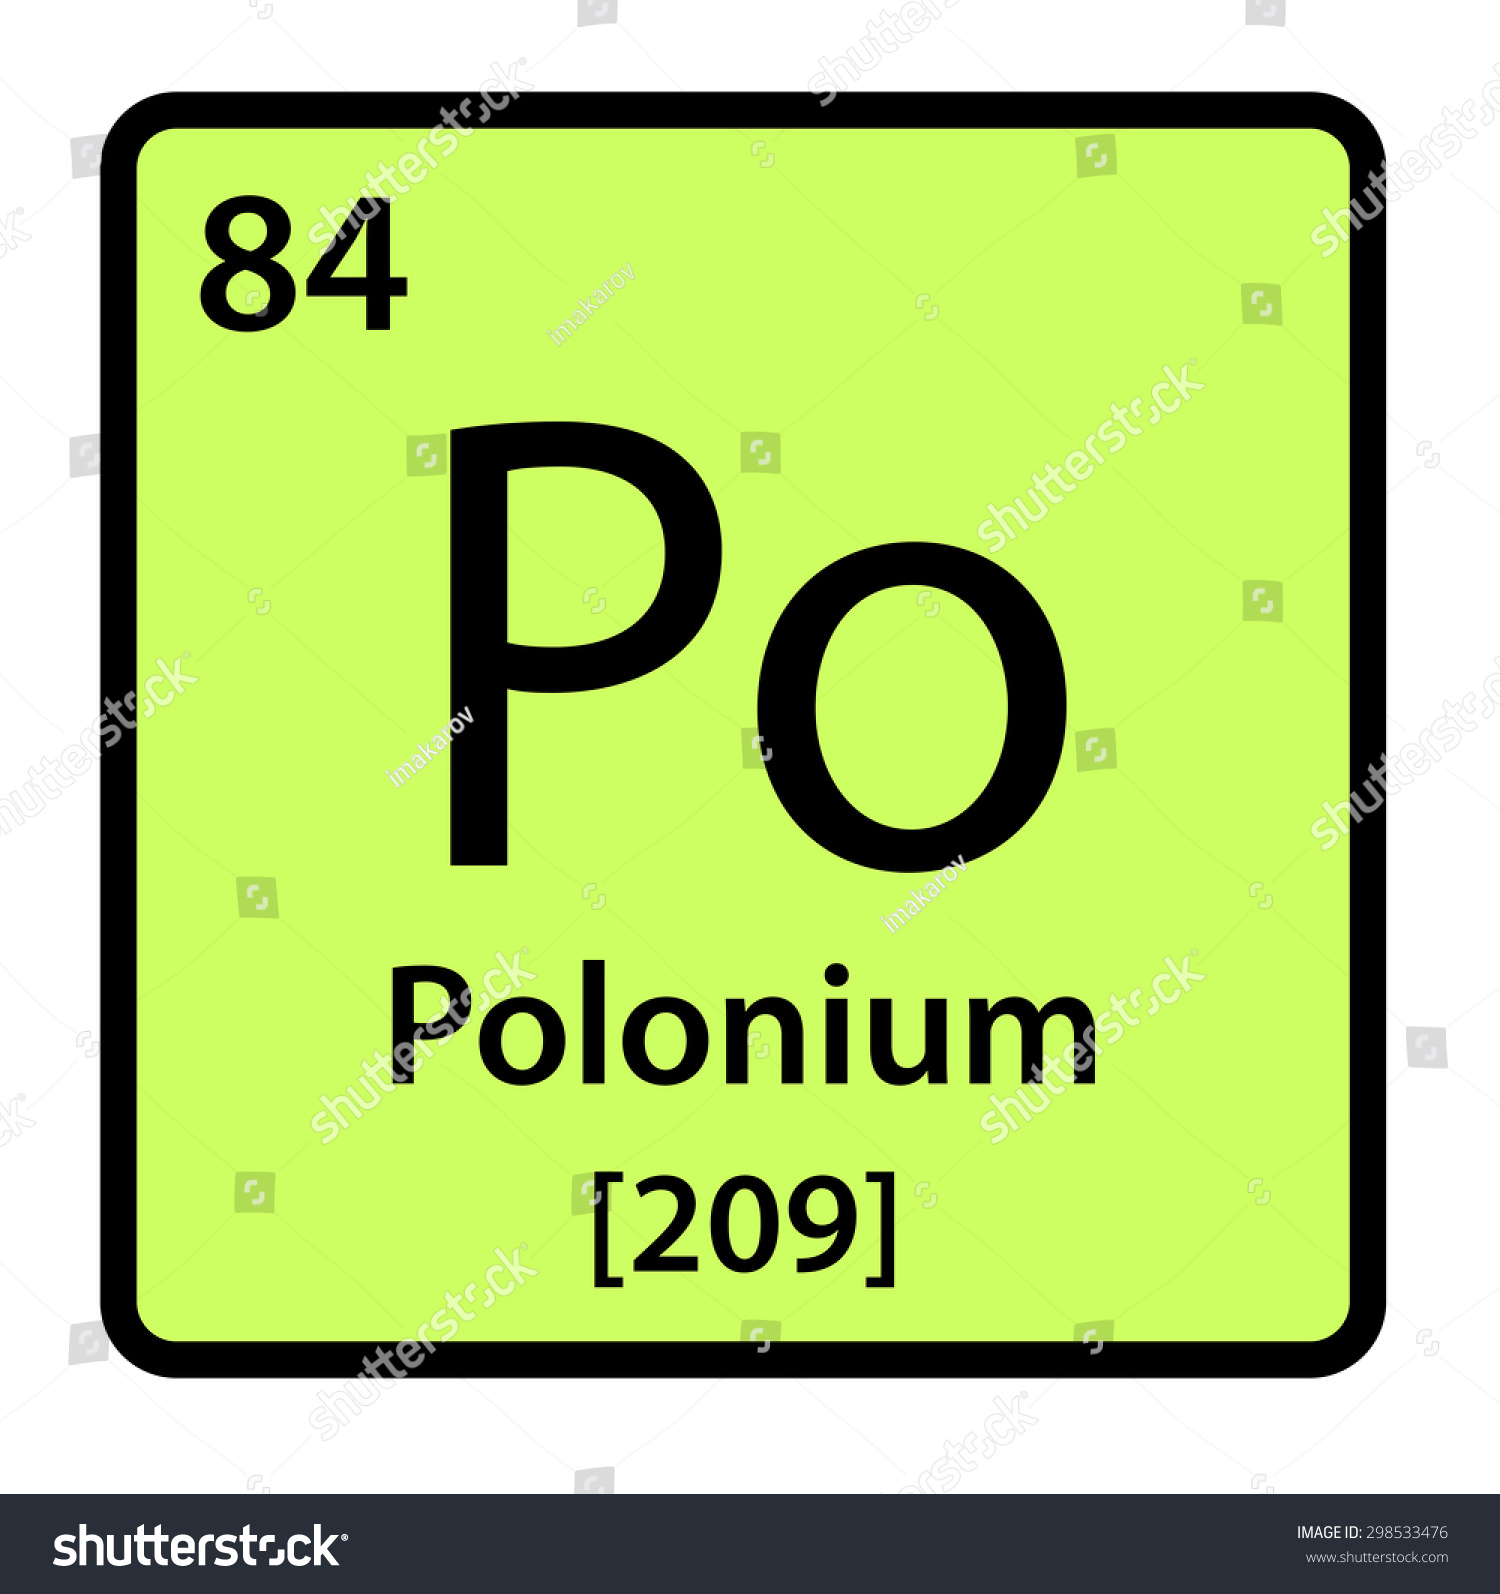 Polonium on the periodic table choice image periodic table images polonium on the periodic table image collections periodic table polonium on the periodic table gallery periodic gamestrikefo Image collections